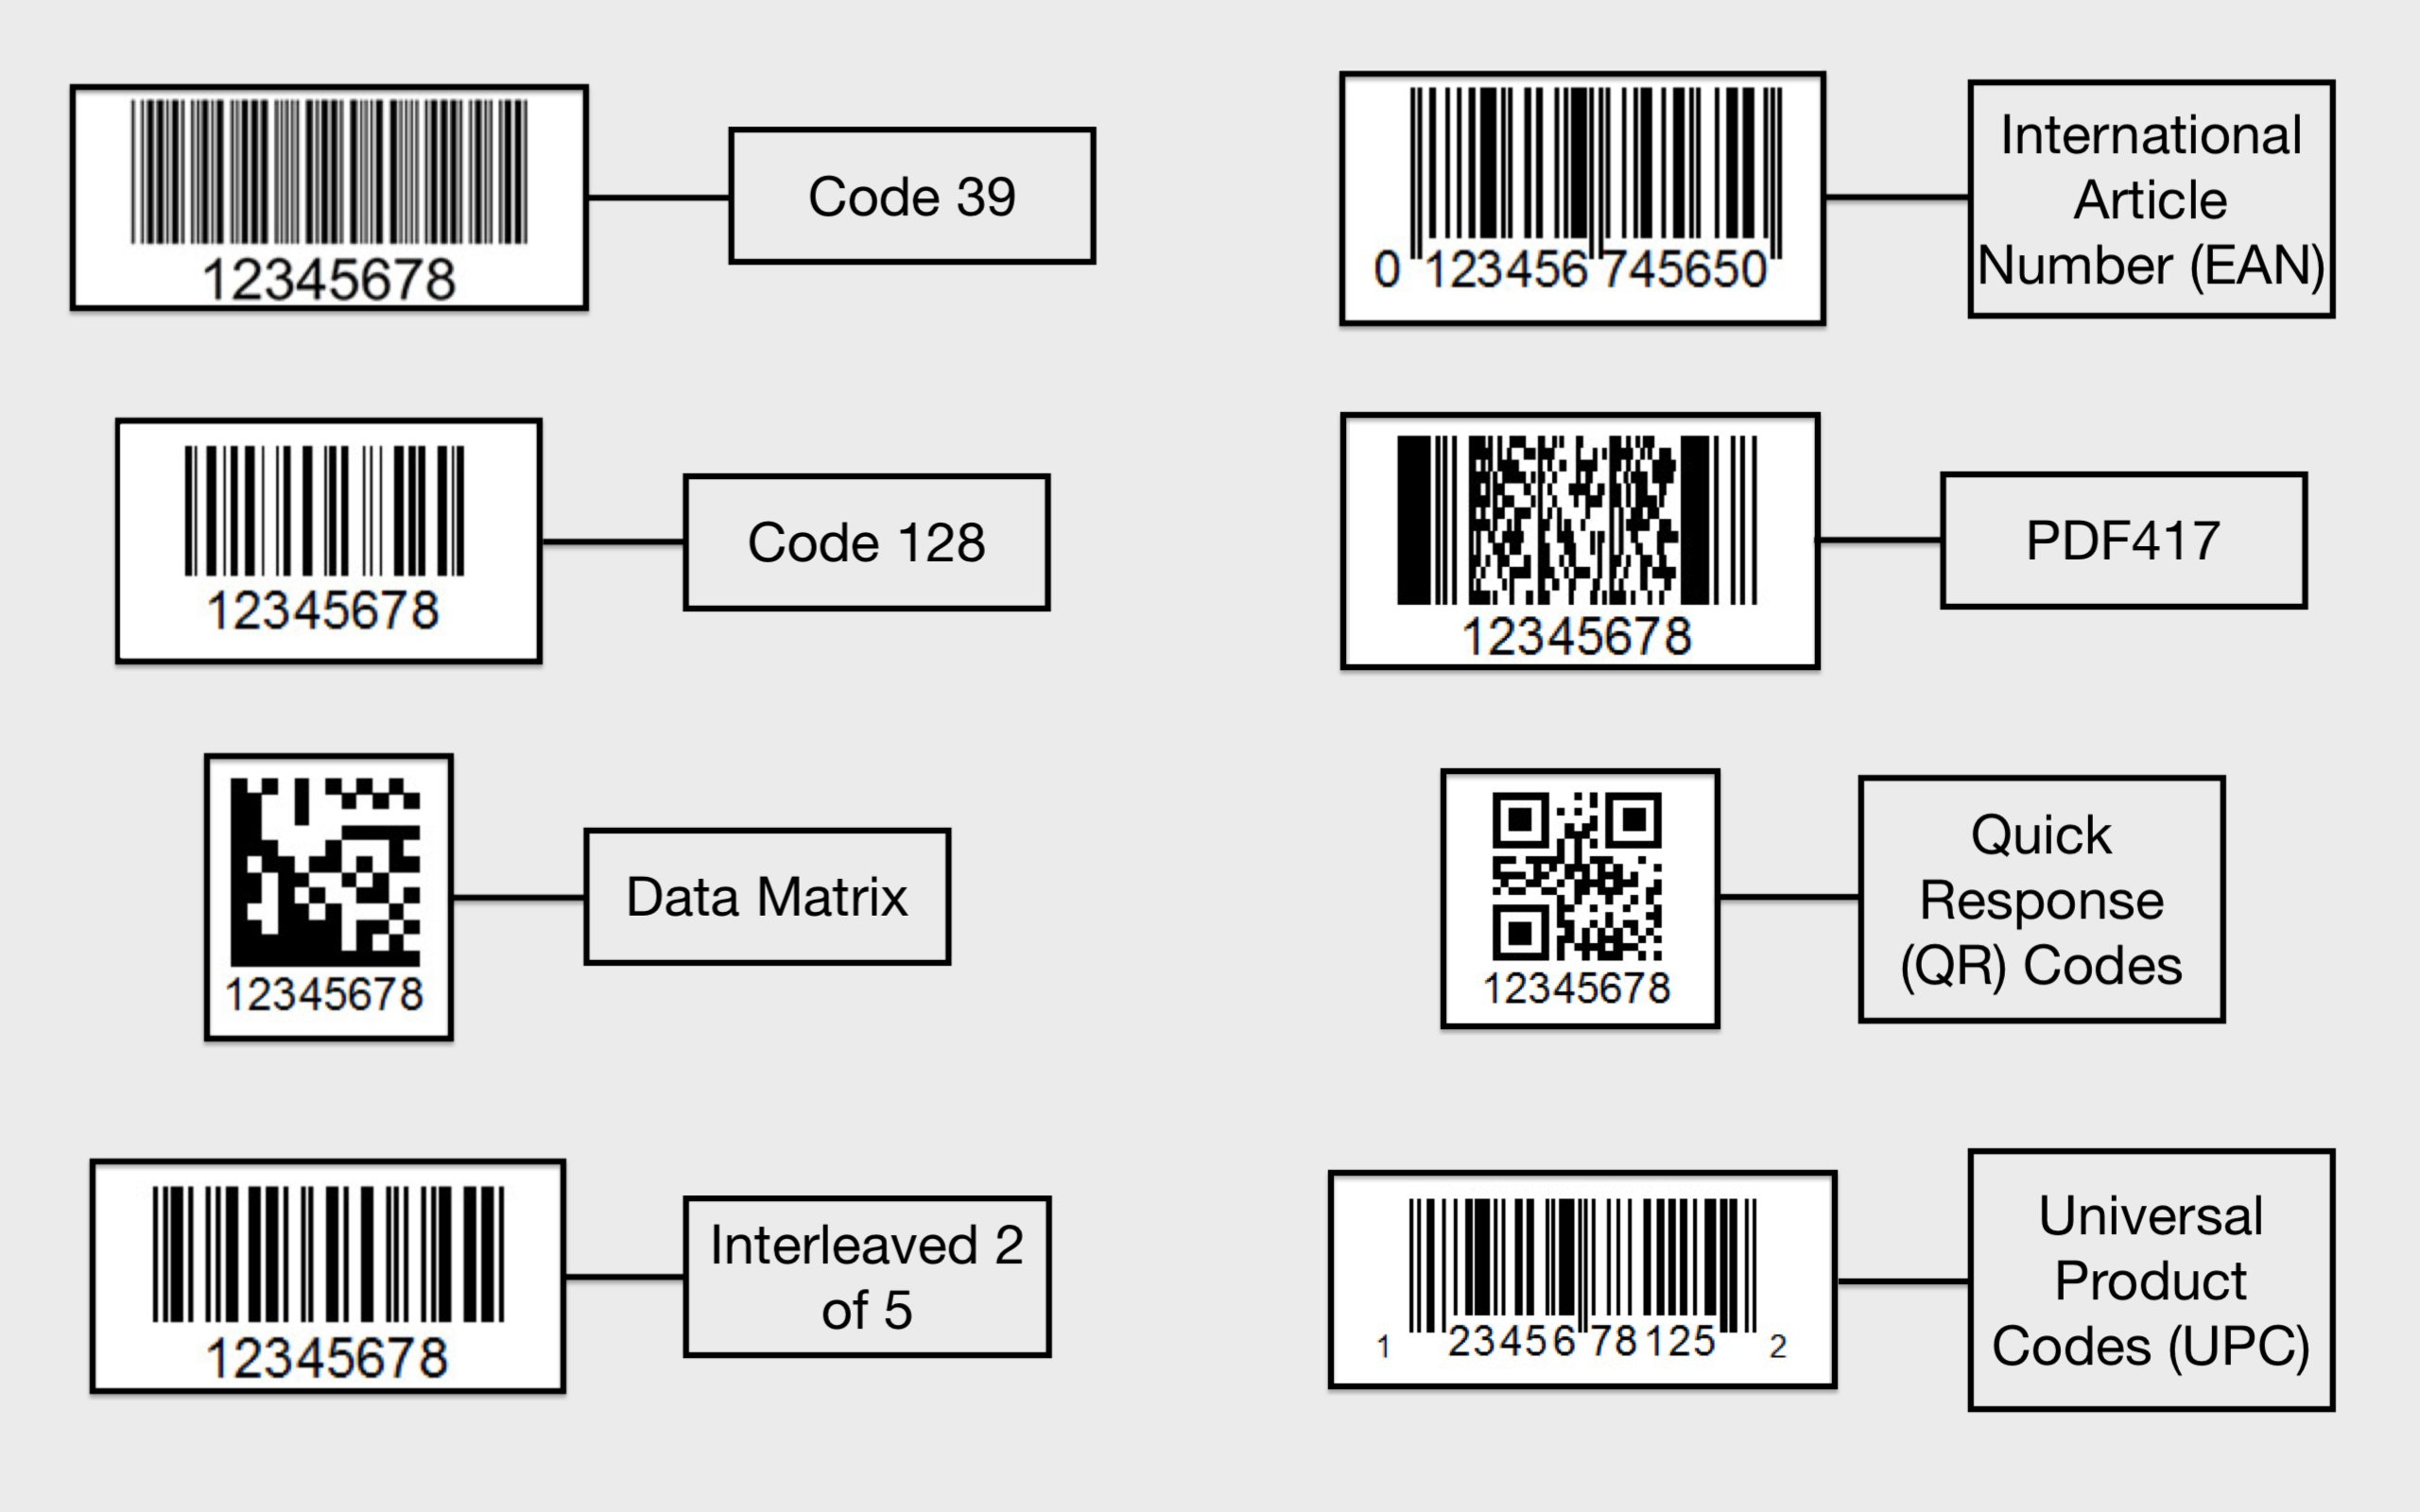 Barcode Types and Scanning Speed of the Route4Me iOS Mobile